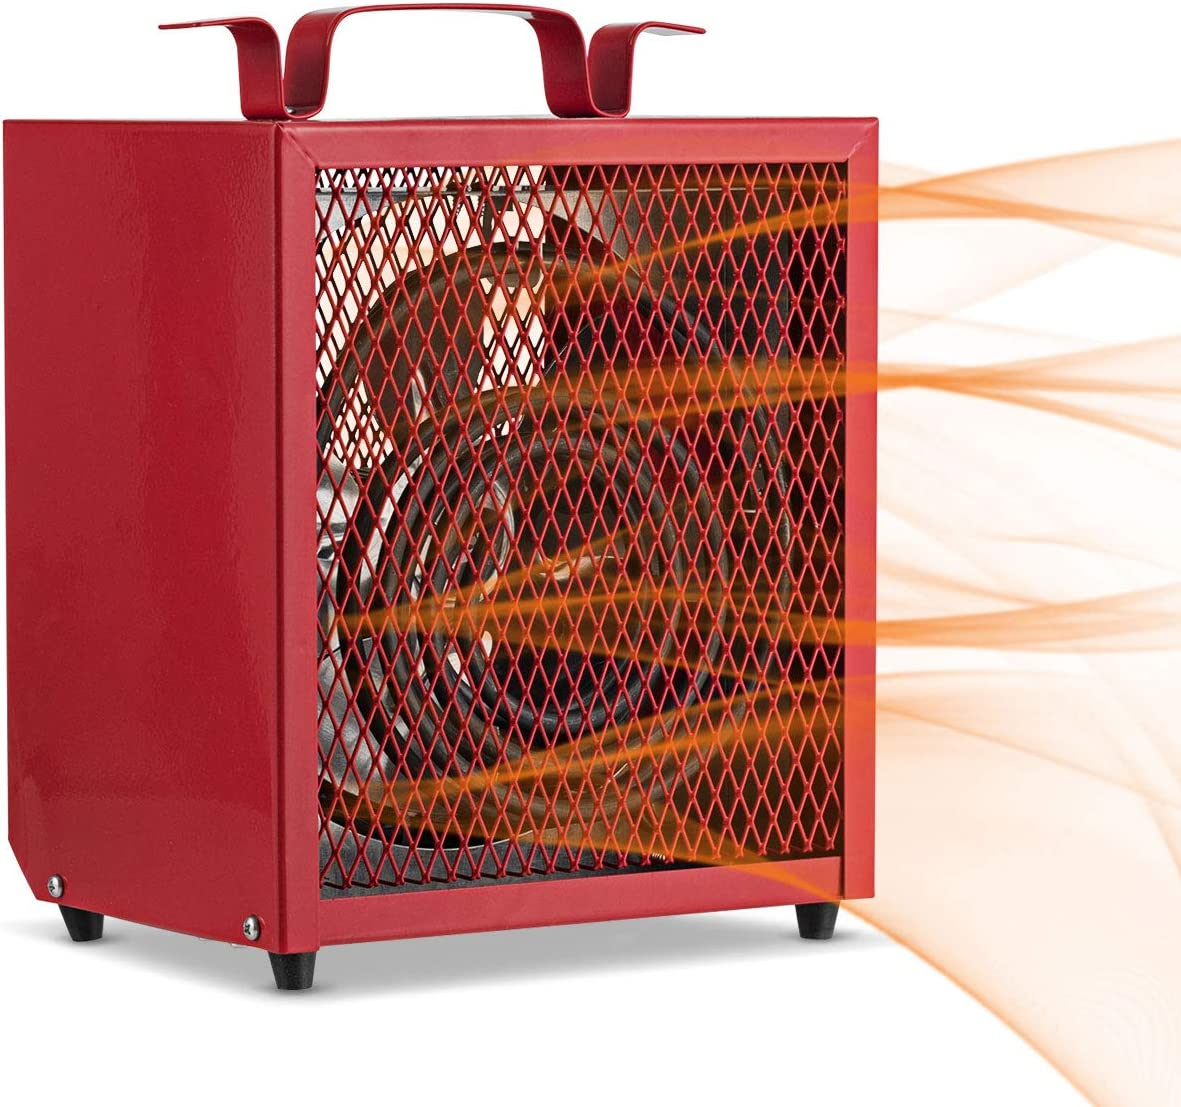 COSTWAY Garage Heater, 4800W Electric Commercial Heater with Adjustable Thermostat, Overheat and Delayed Protection, Portable Handle, Freestanding or Ceiling Mount Heaters for Garage and Workshop